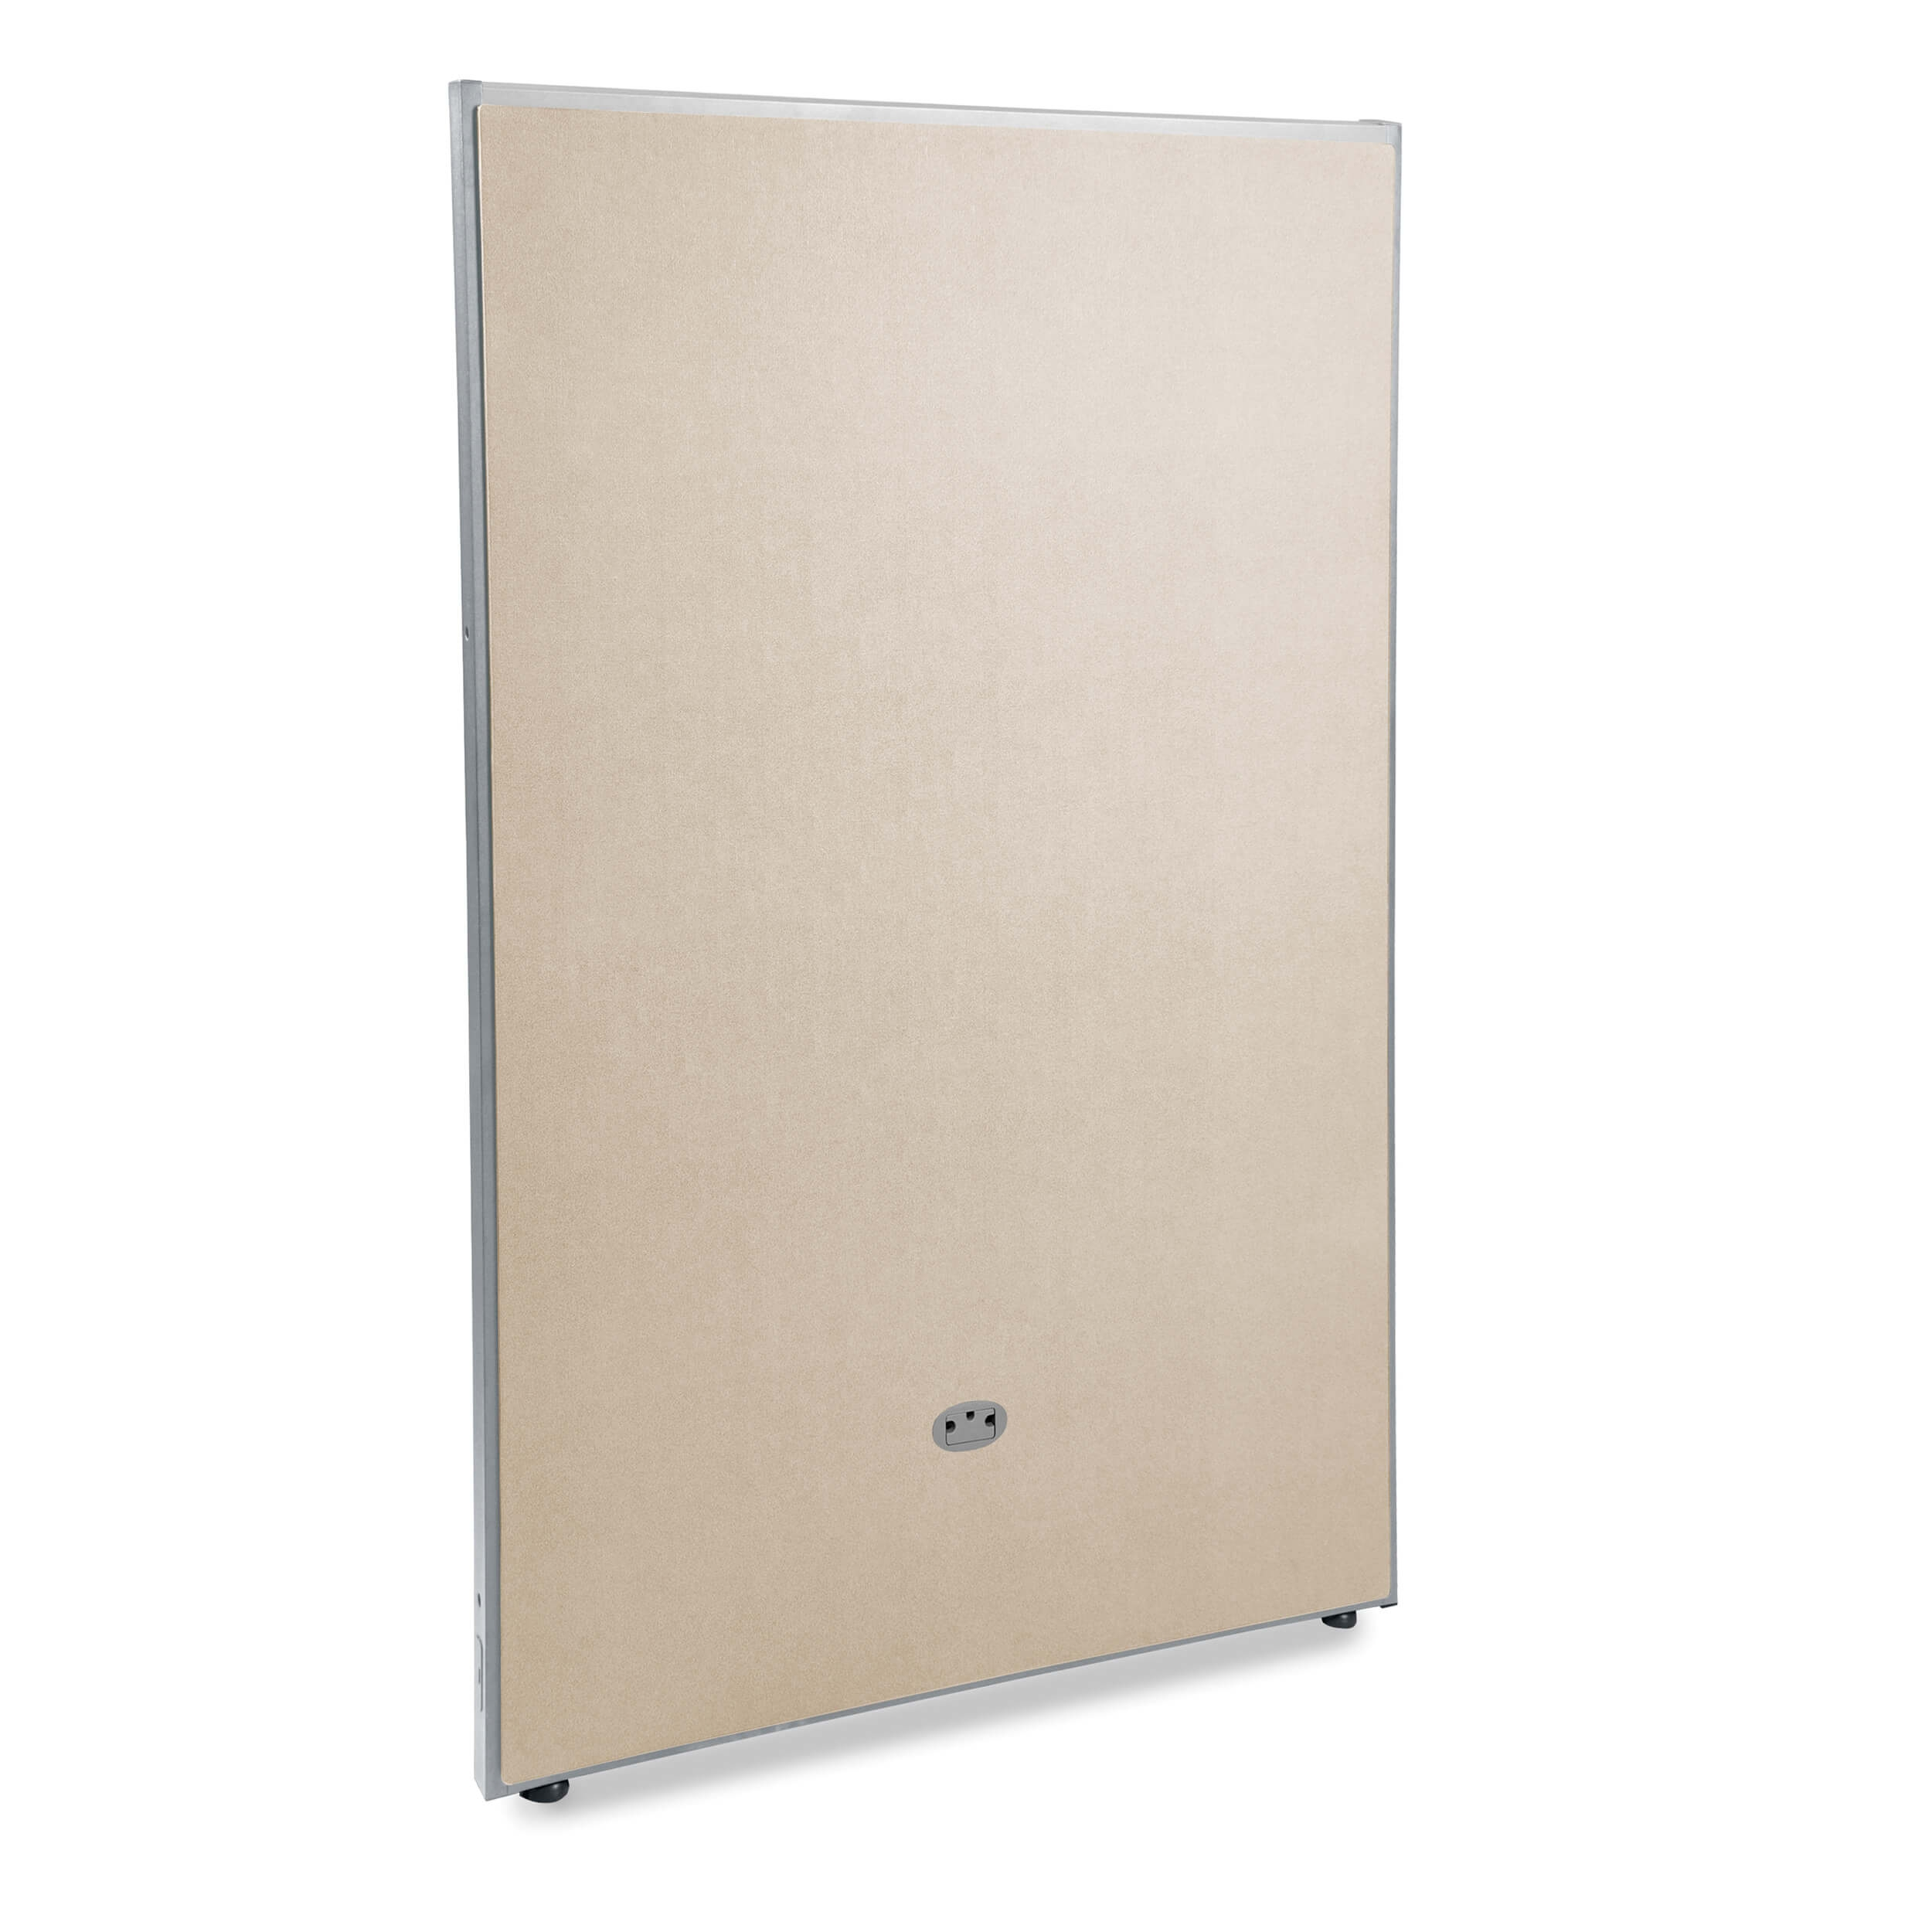 privacy-panels-movable-partition.jpg